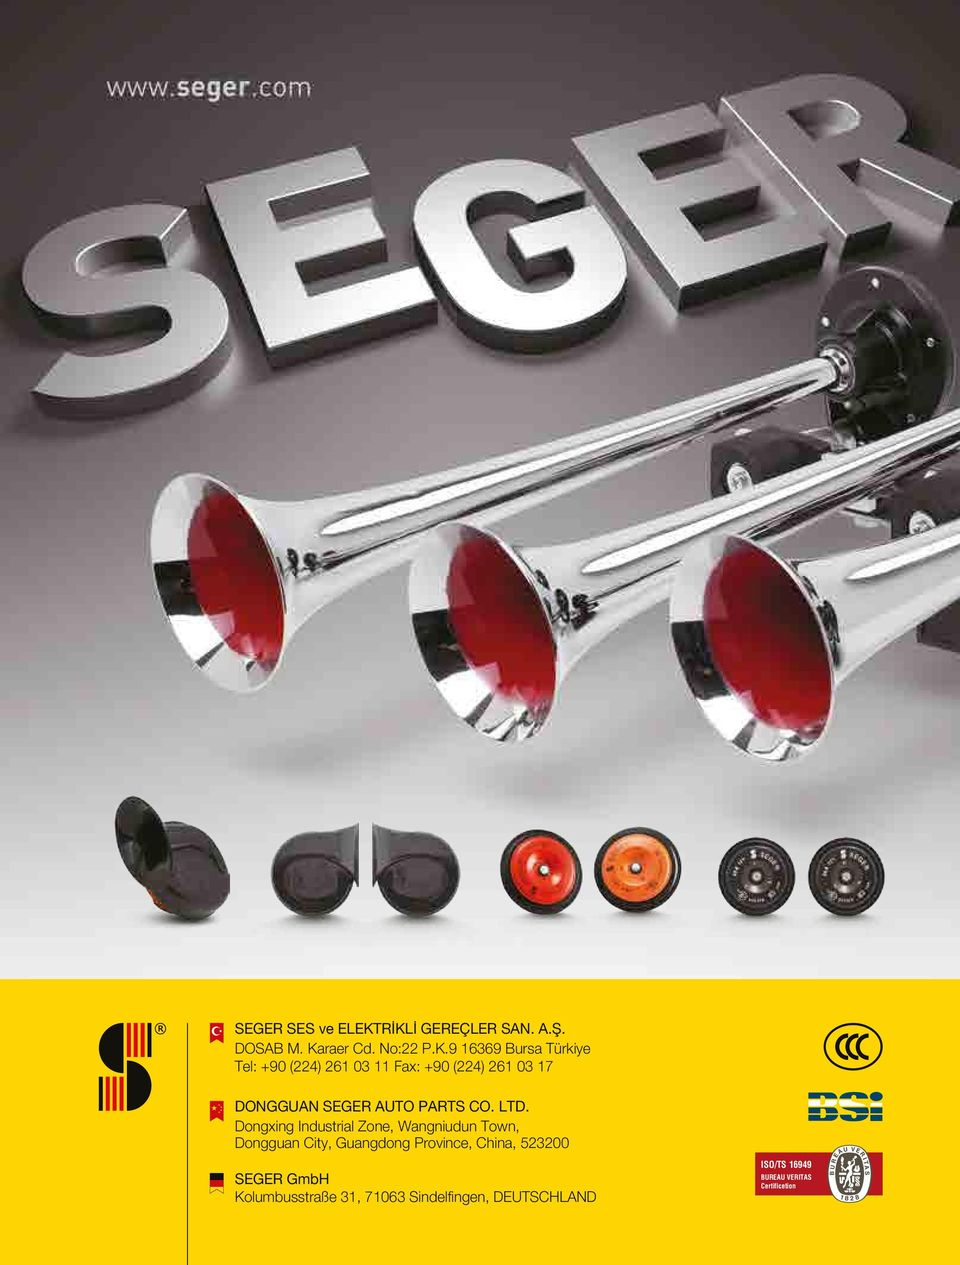 261 03 11 Fax: +90 (224) 261 03 17 DONGGUAN SEGER AUTO PARTS CO. LTD.